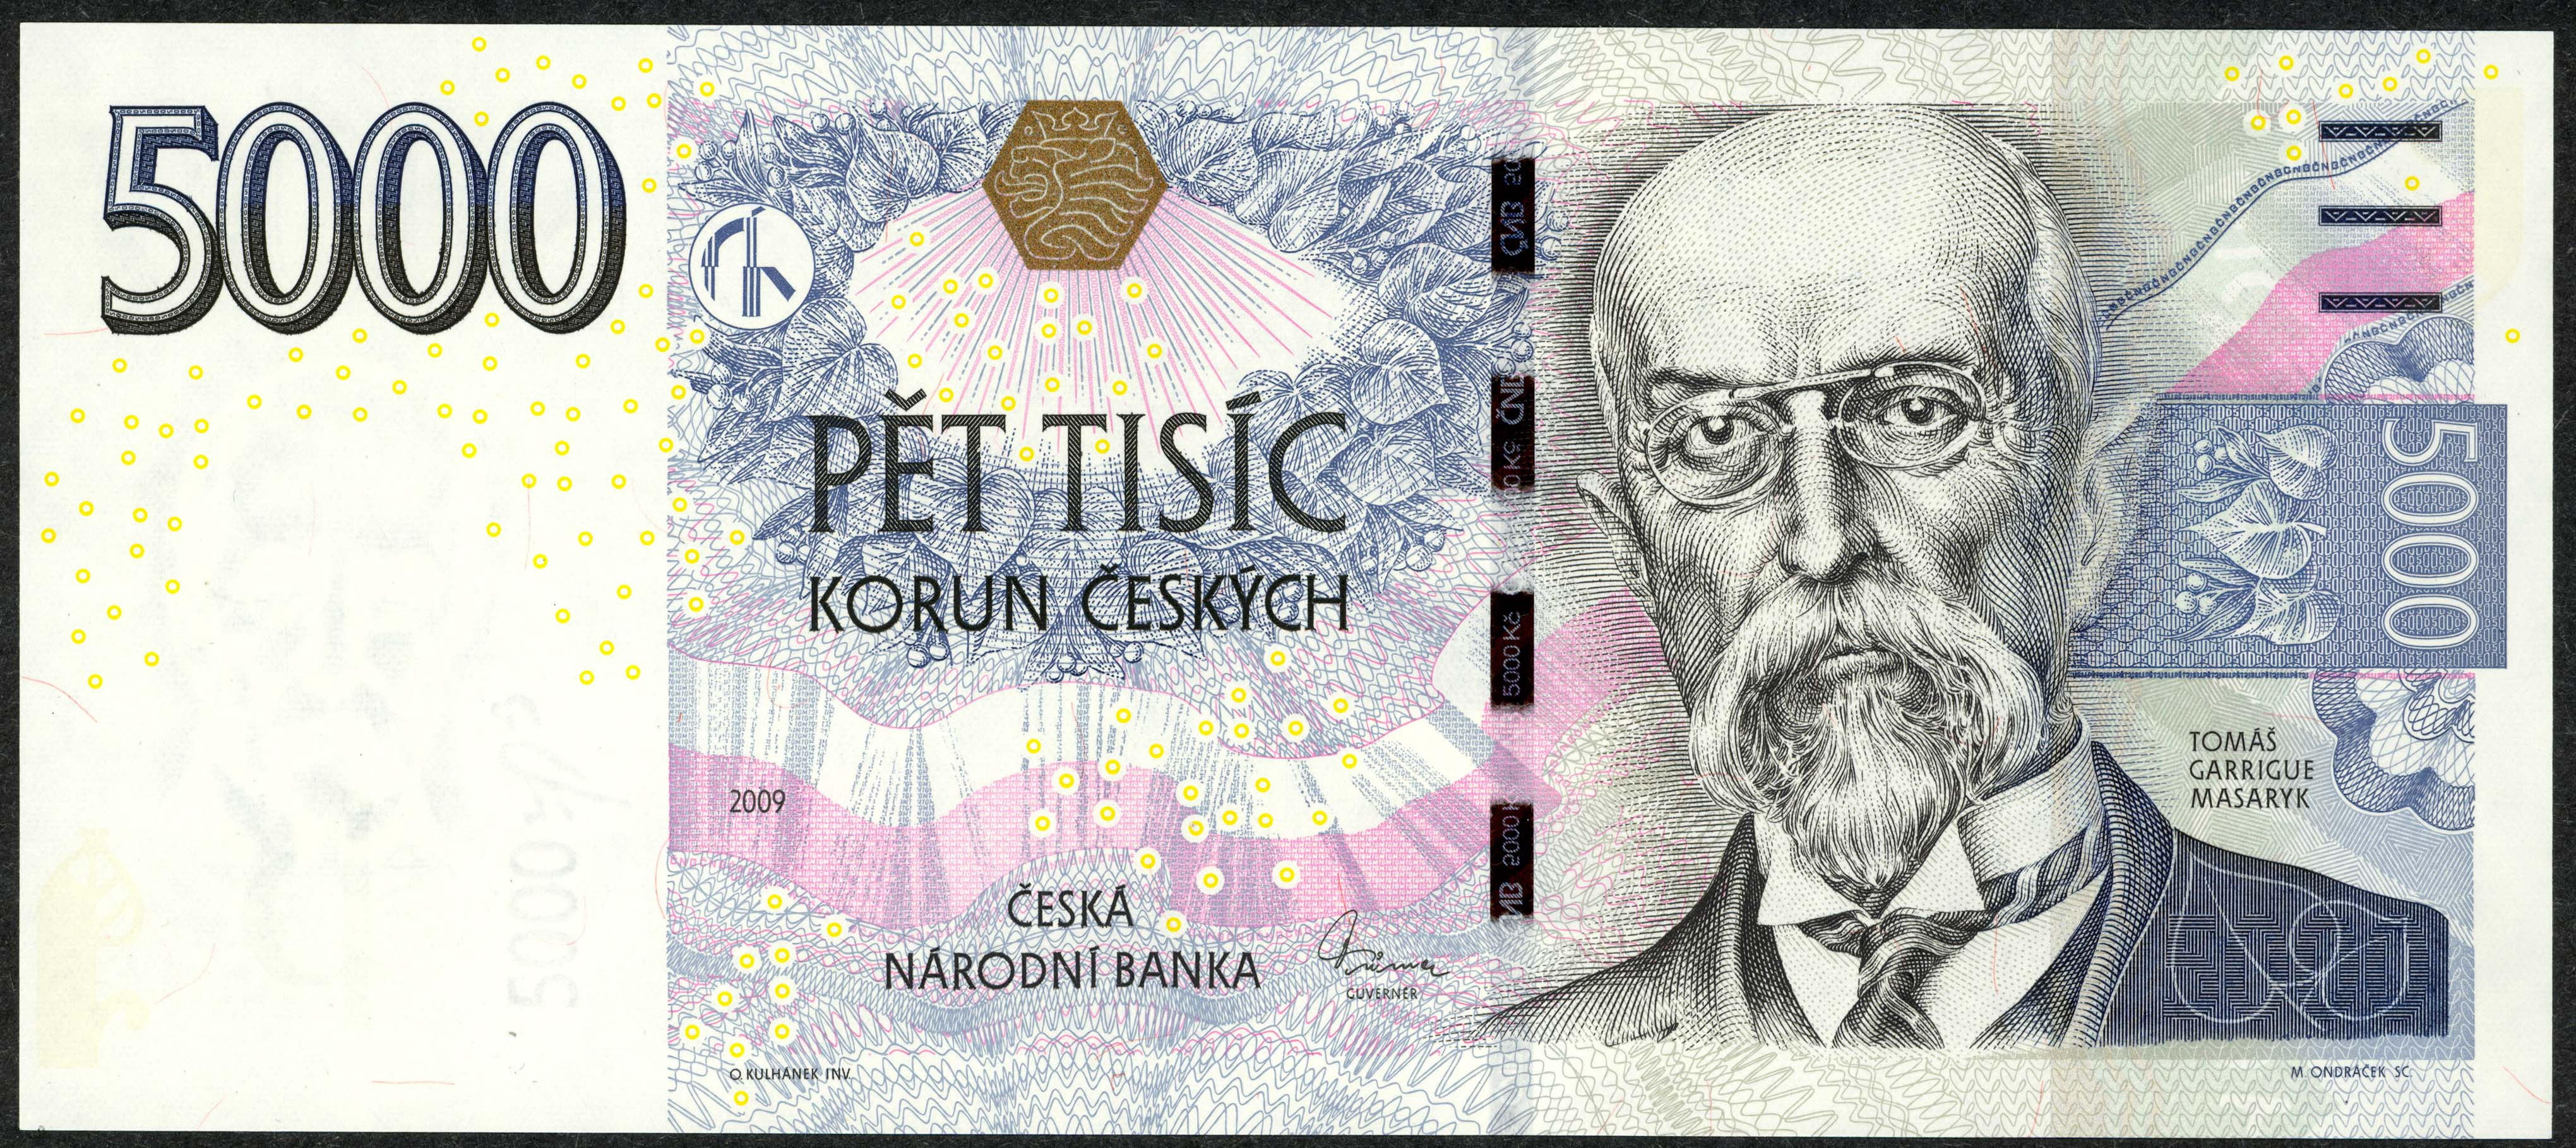 15000 Czk In Euro